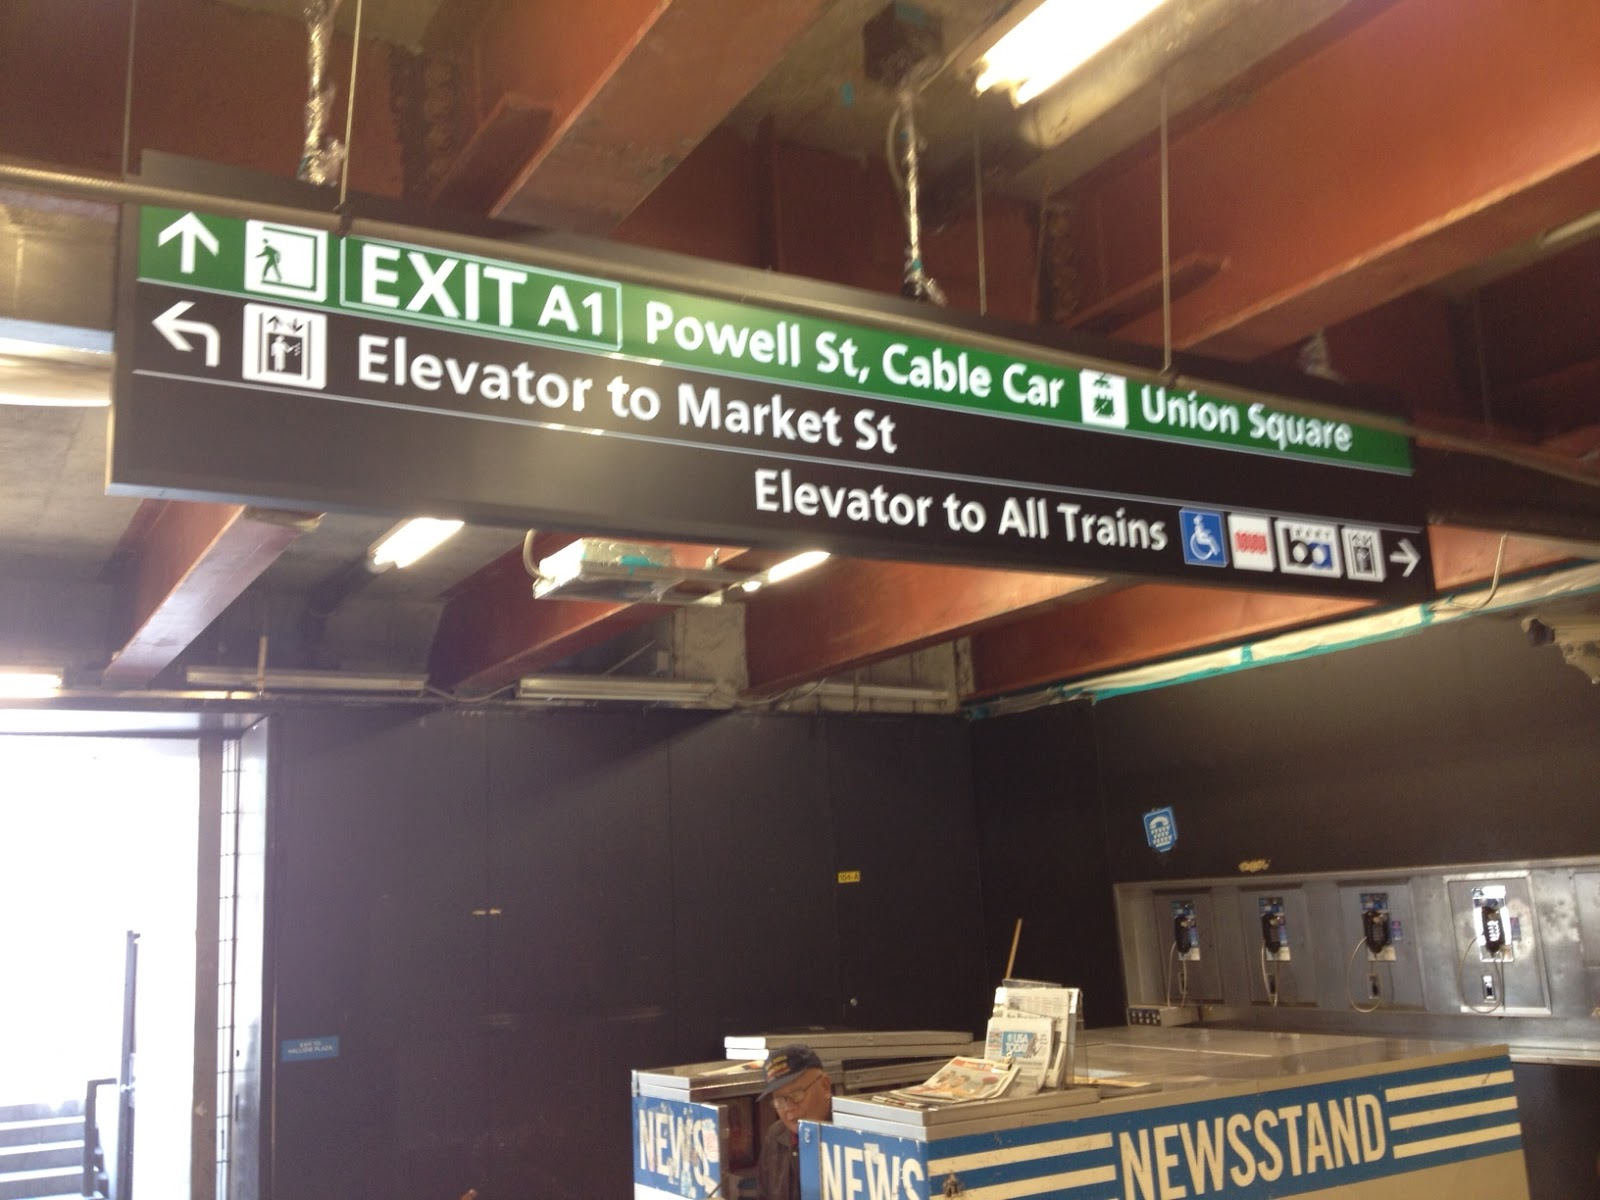 New signage at exit to Powell Street